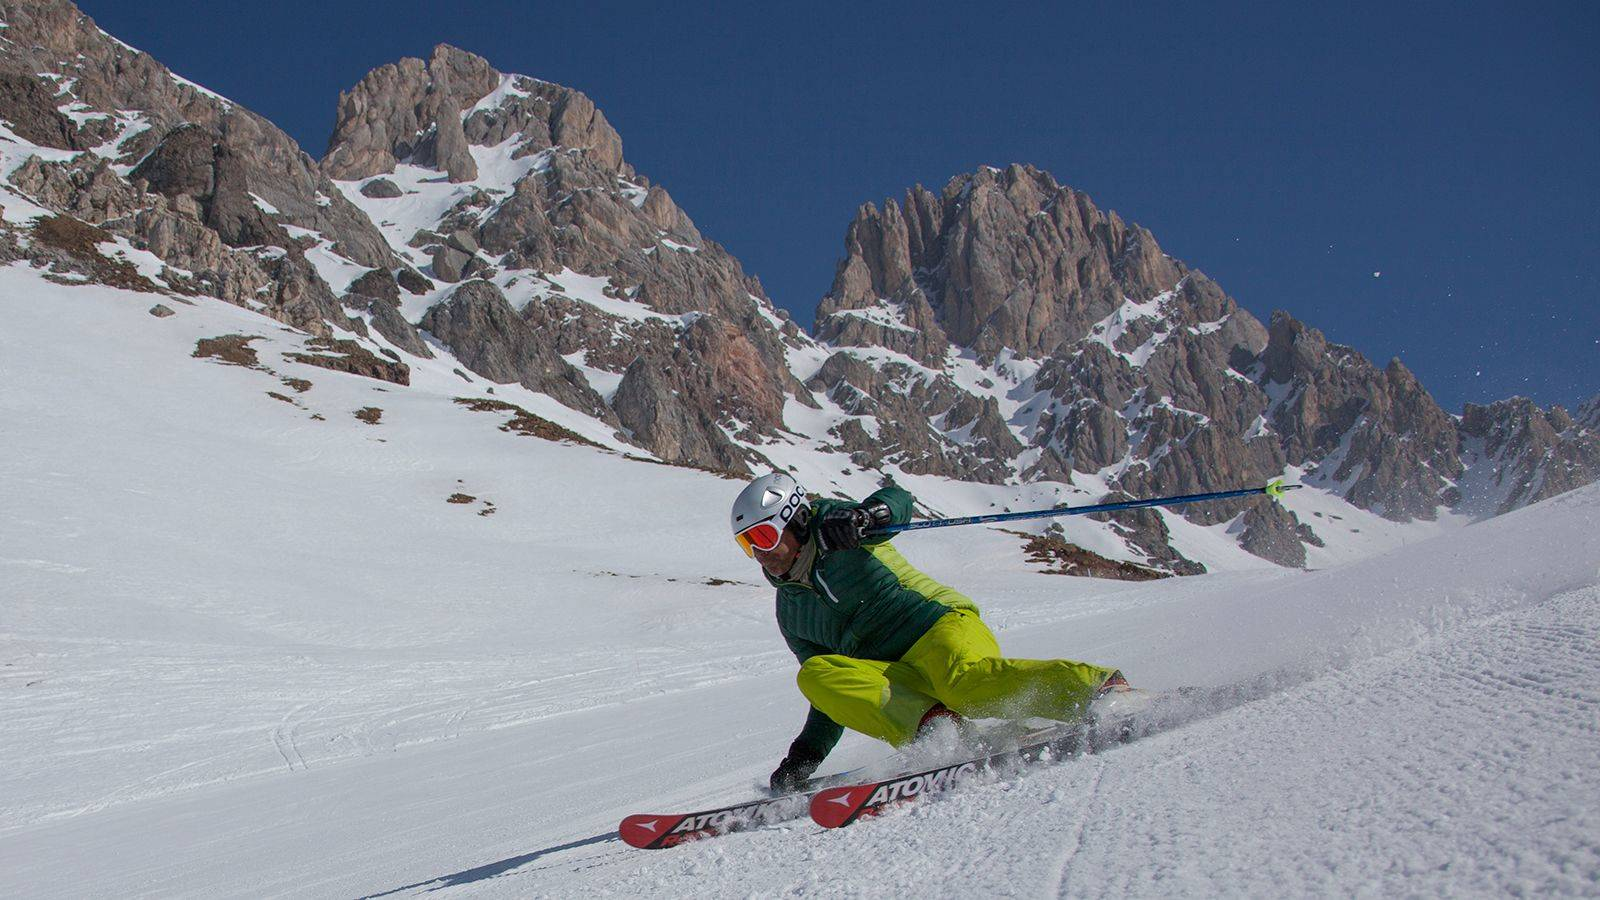 A skier takes a curve on the slopes of San Pellegrino